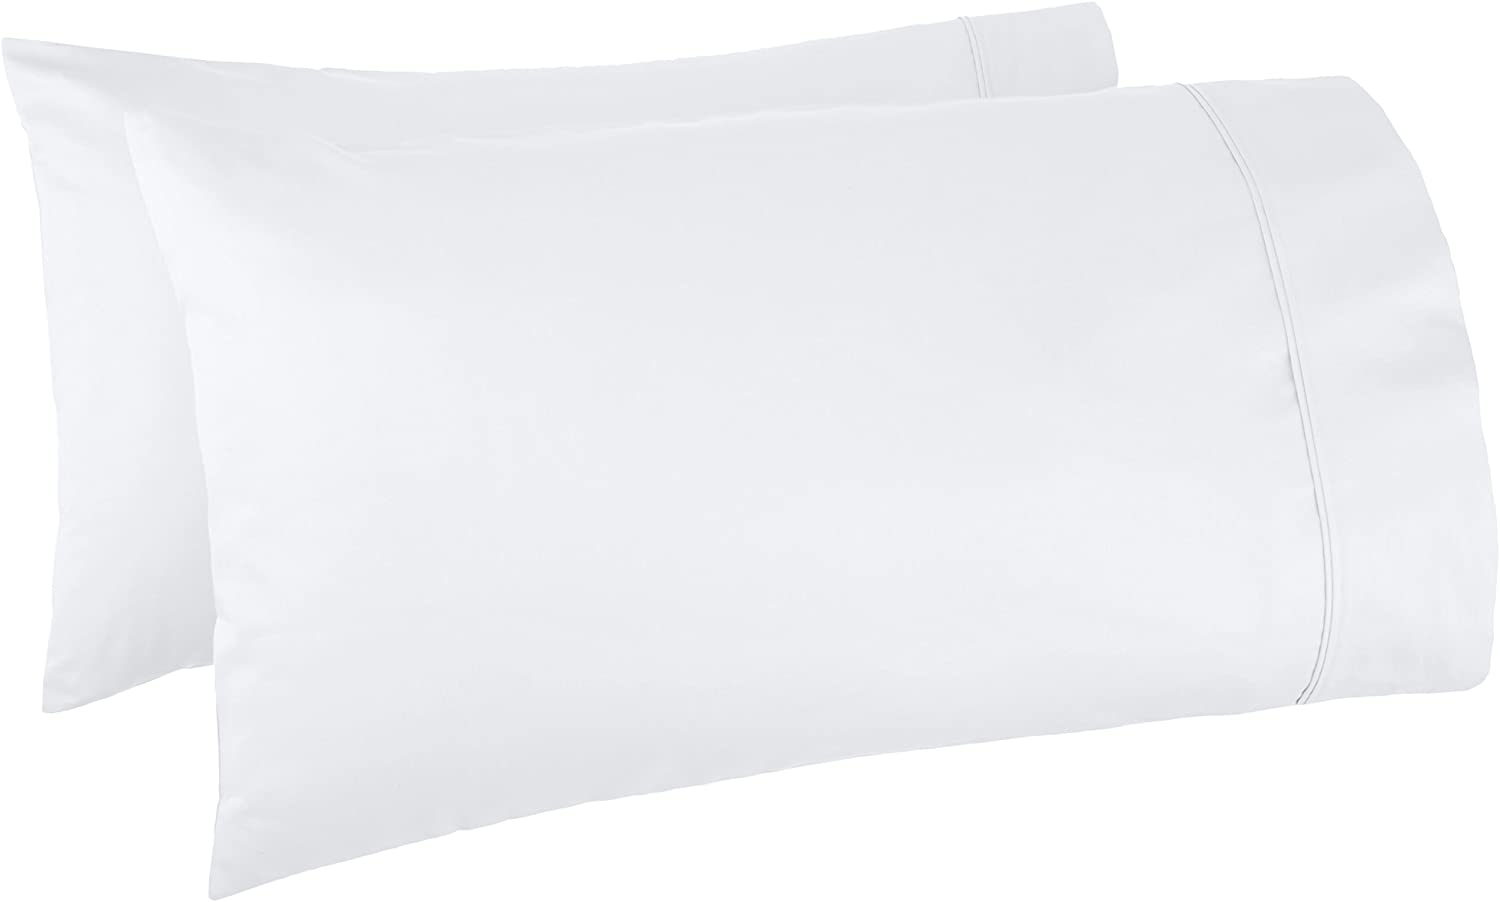 Basics 400 Thread Count Cotton Pillow Cases, King, Set of 2, White: Home & Kitchen